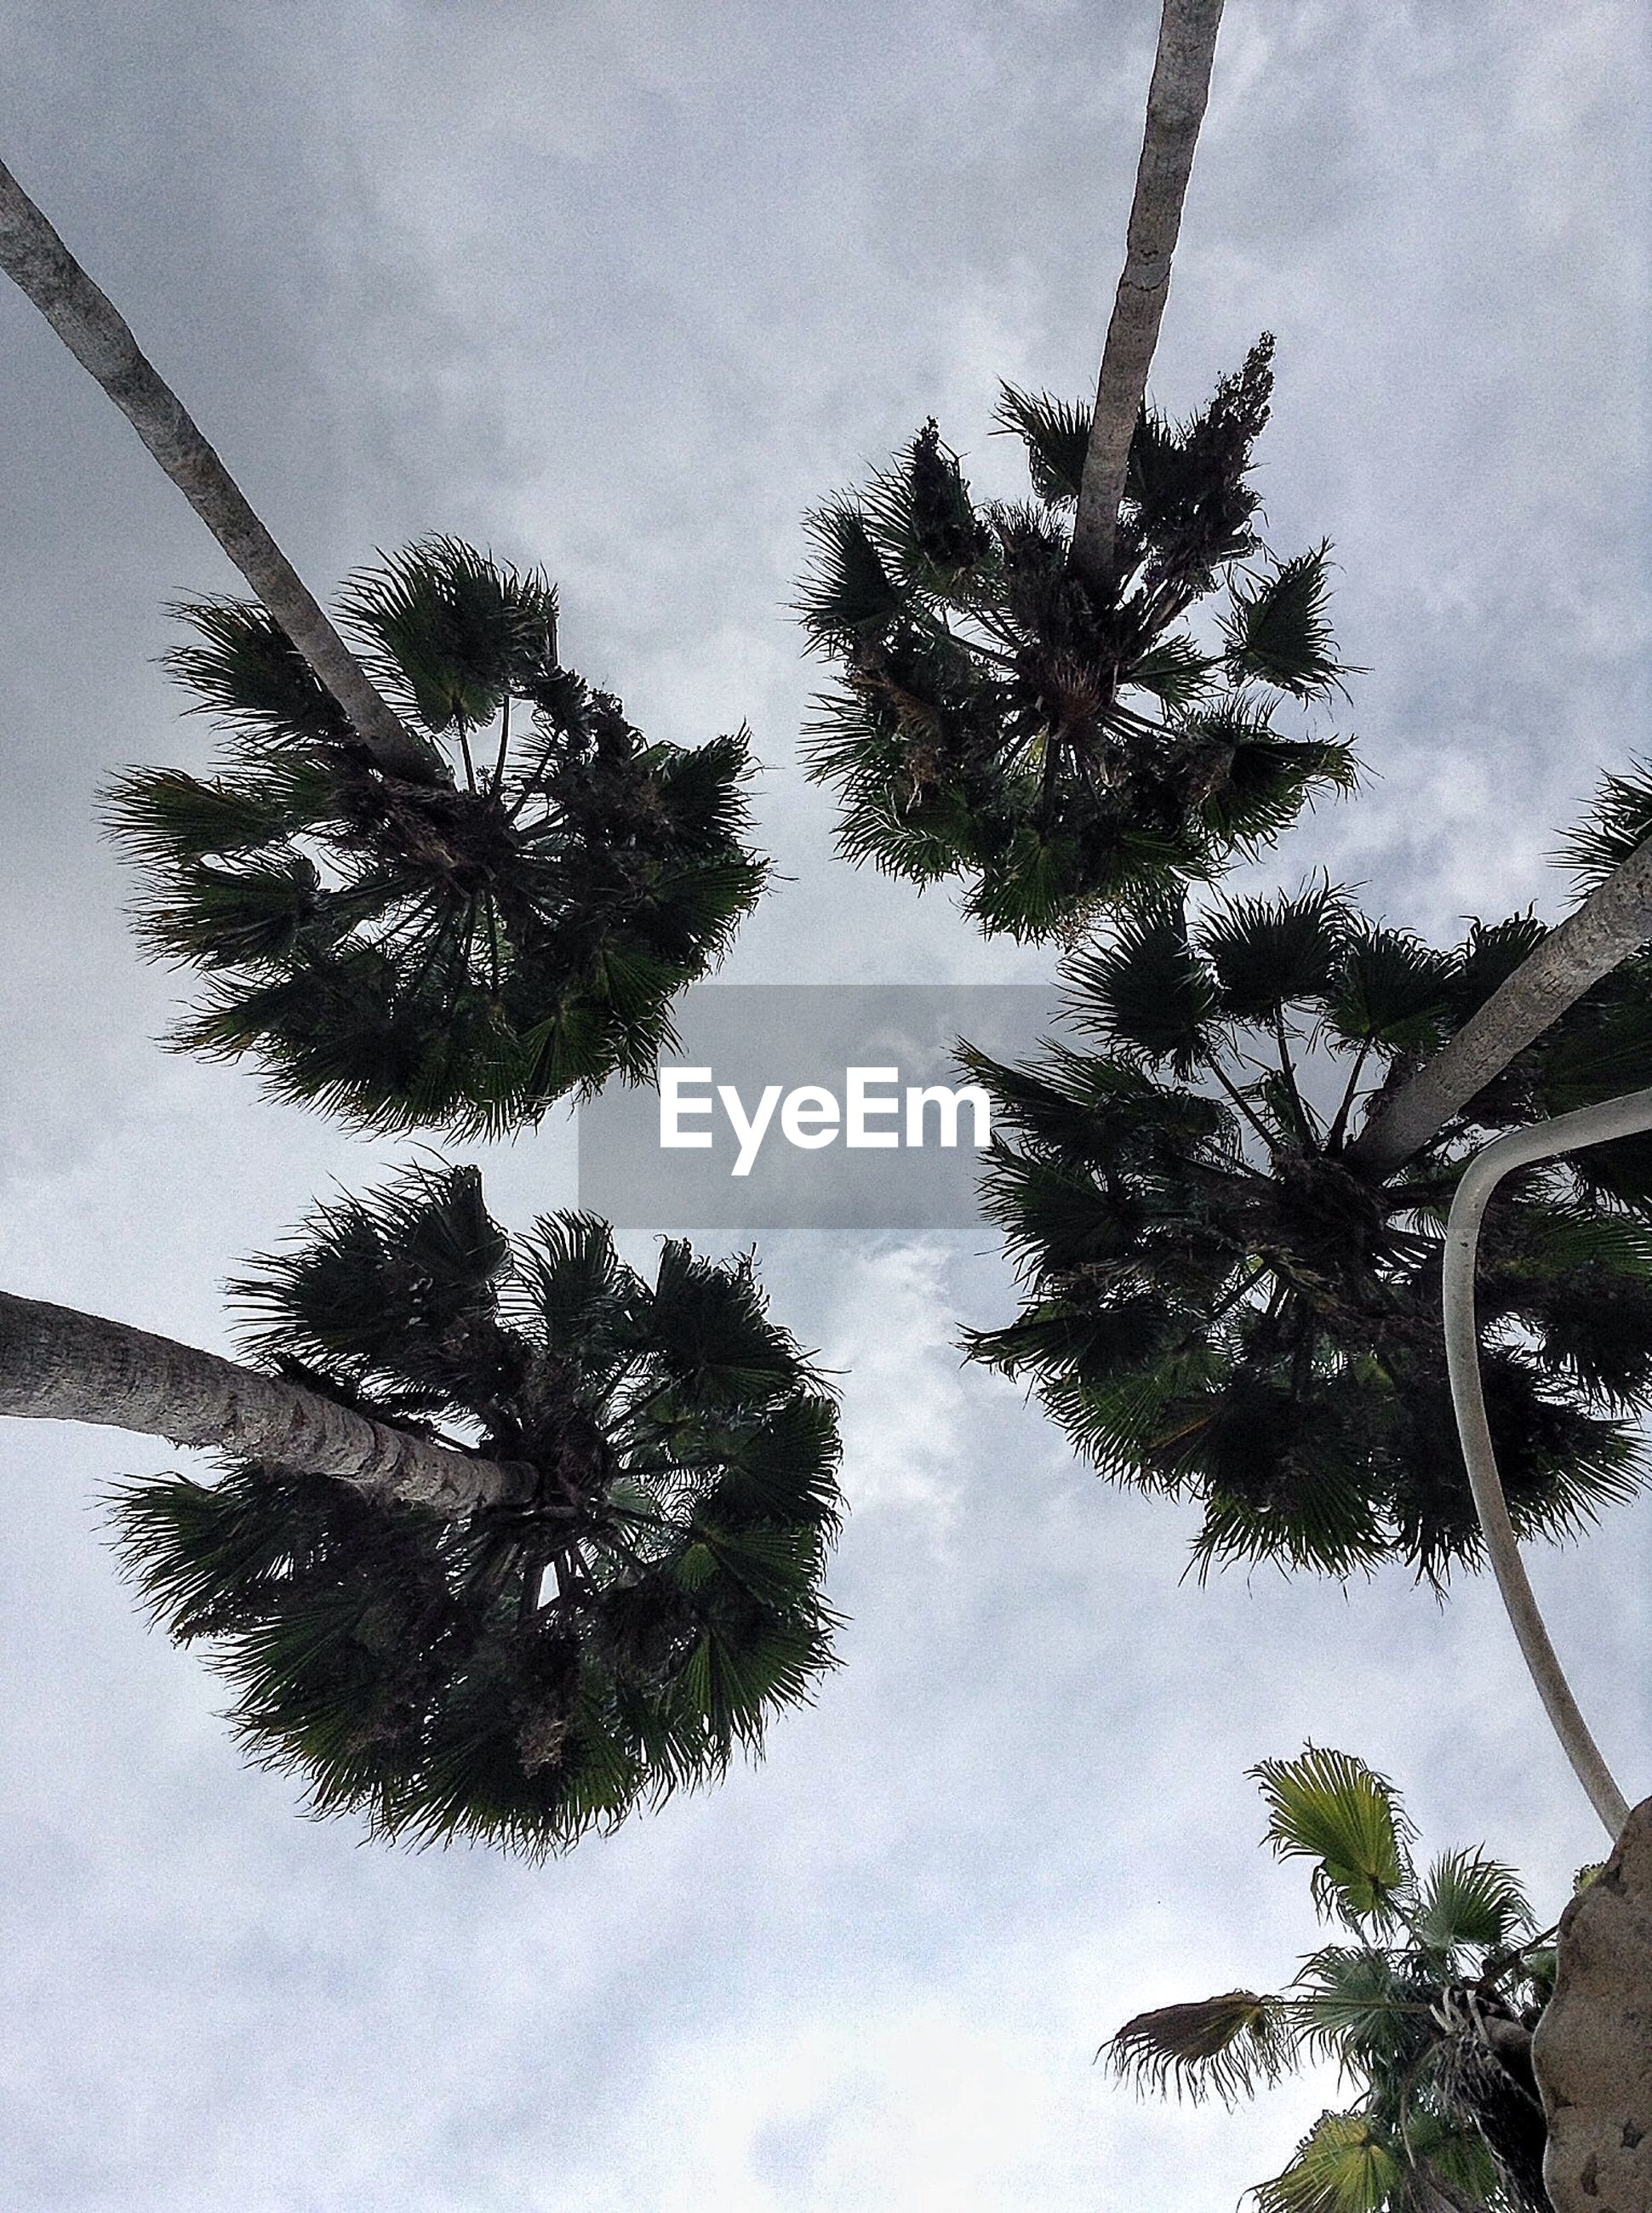 Directly below shot of palm trees against cloudy sky